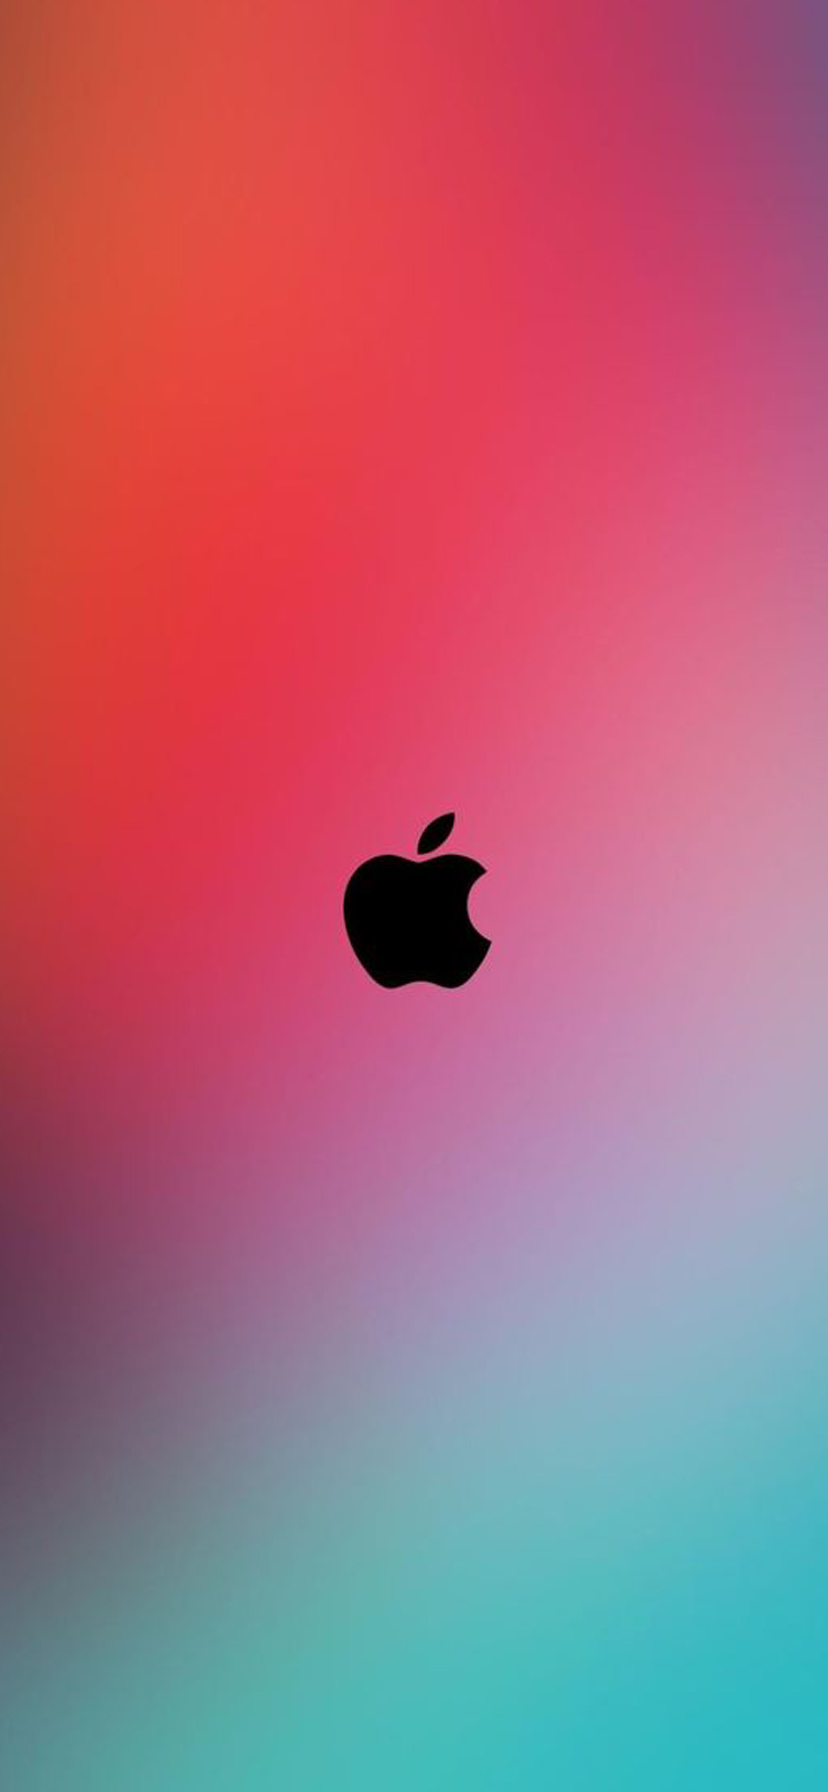 10 Alternative Wallpapers For Apple Iphone 11 03 Simple Colorful Background With Logo Hd Wallpapers Wallpapers Download High Resolution Wallpapers